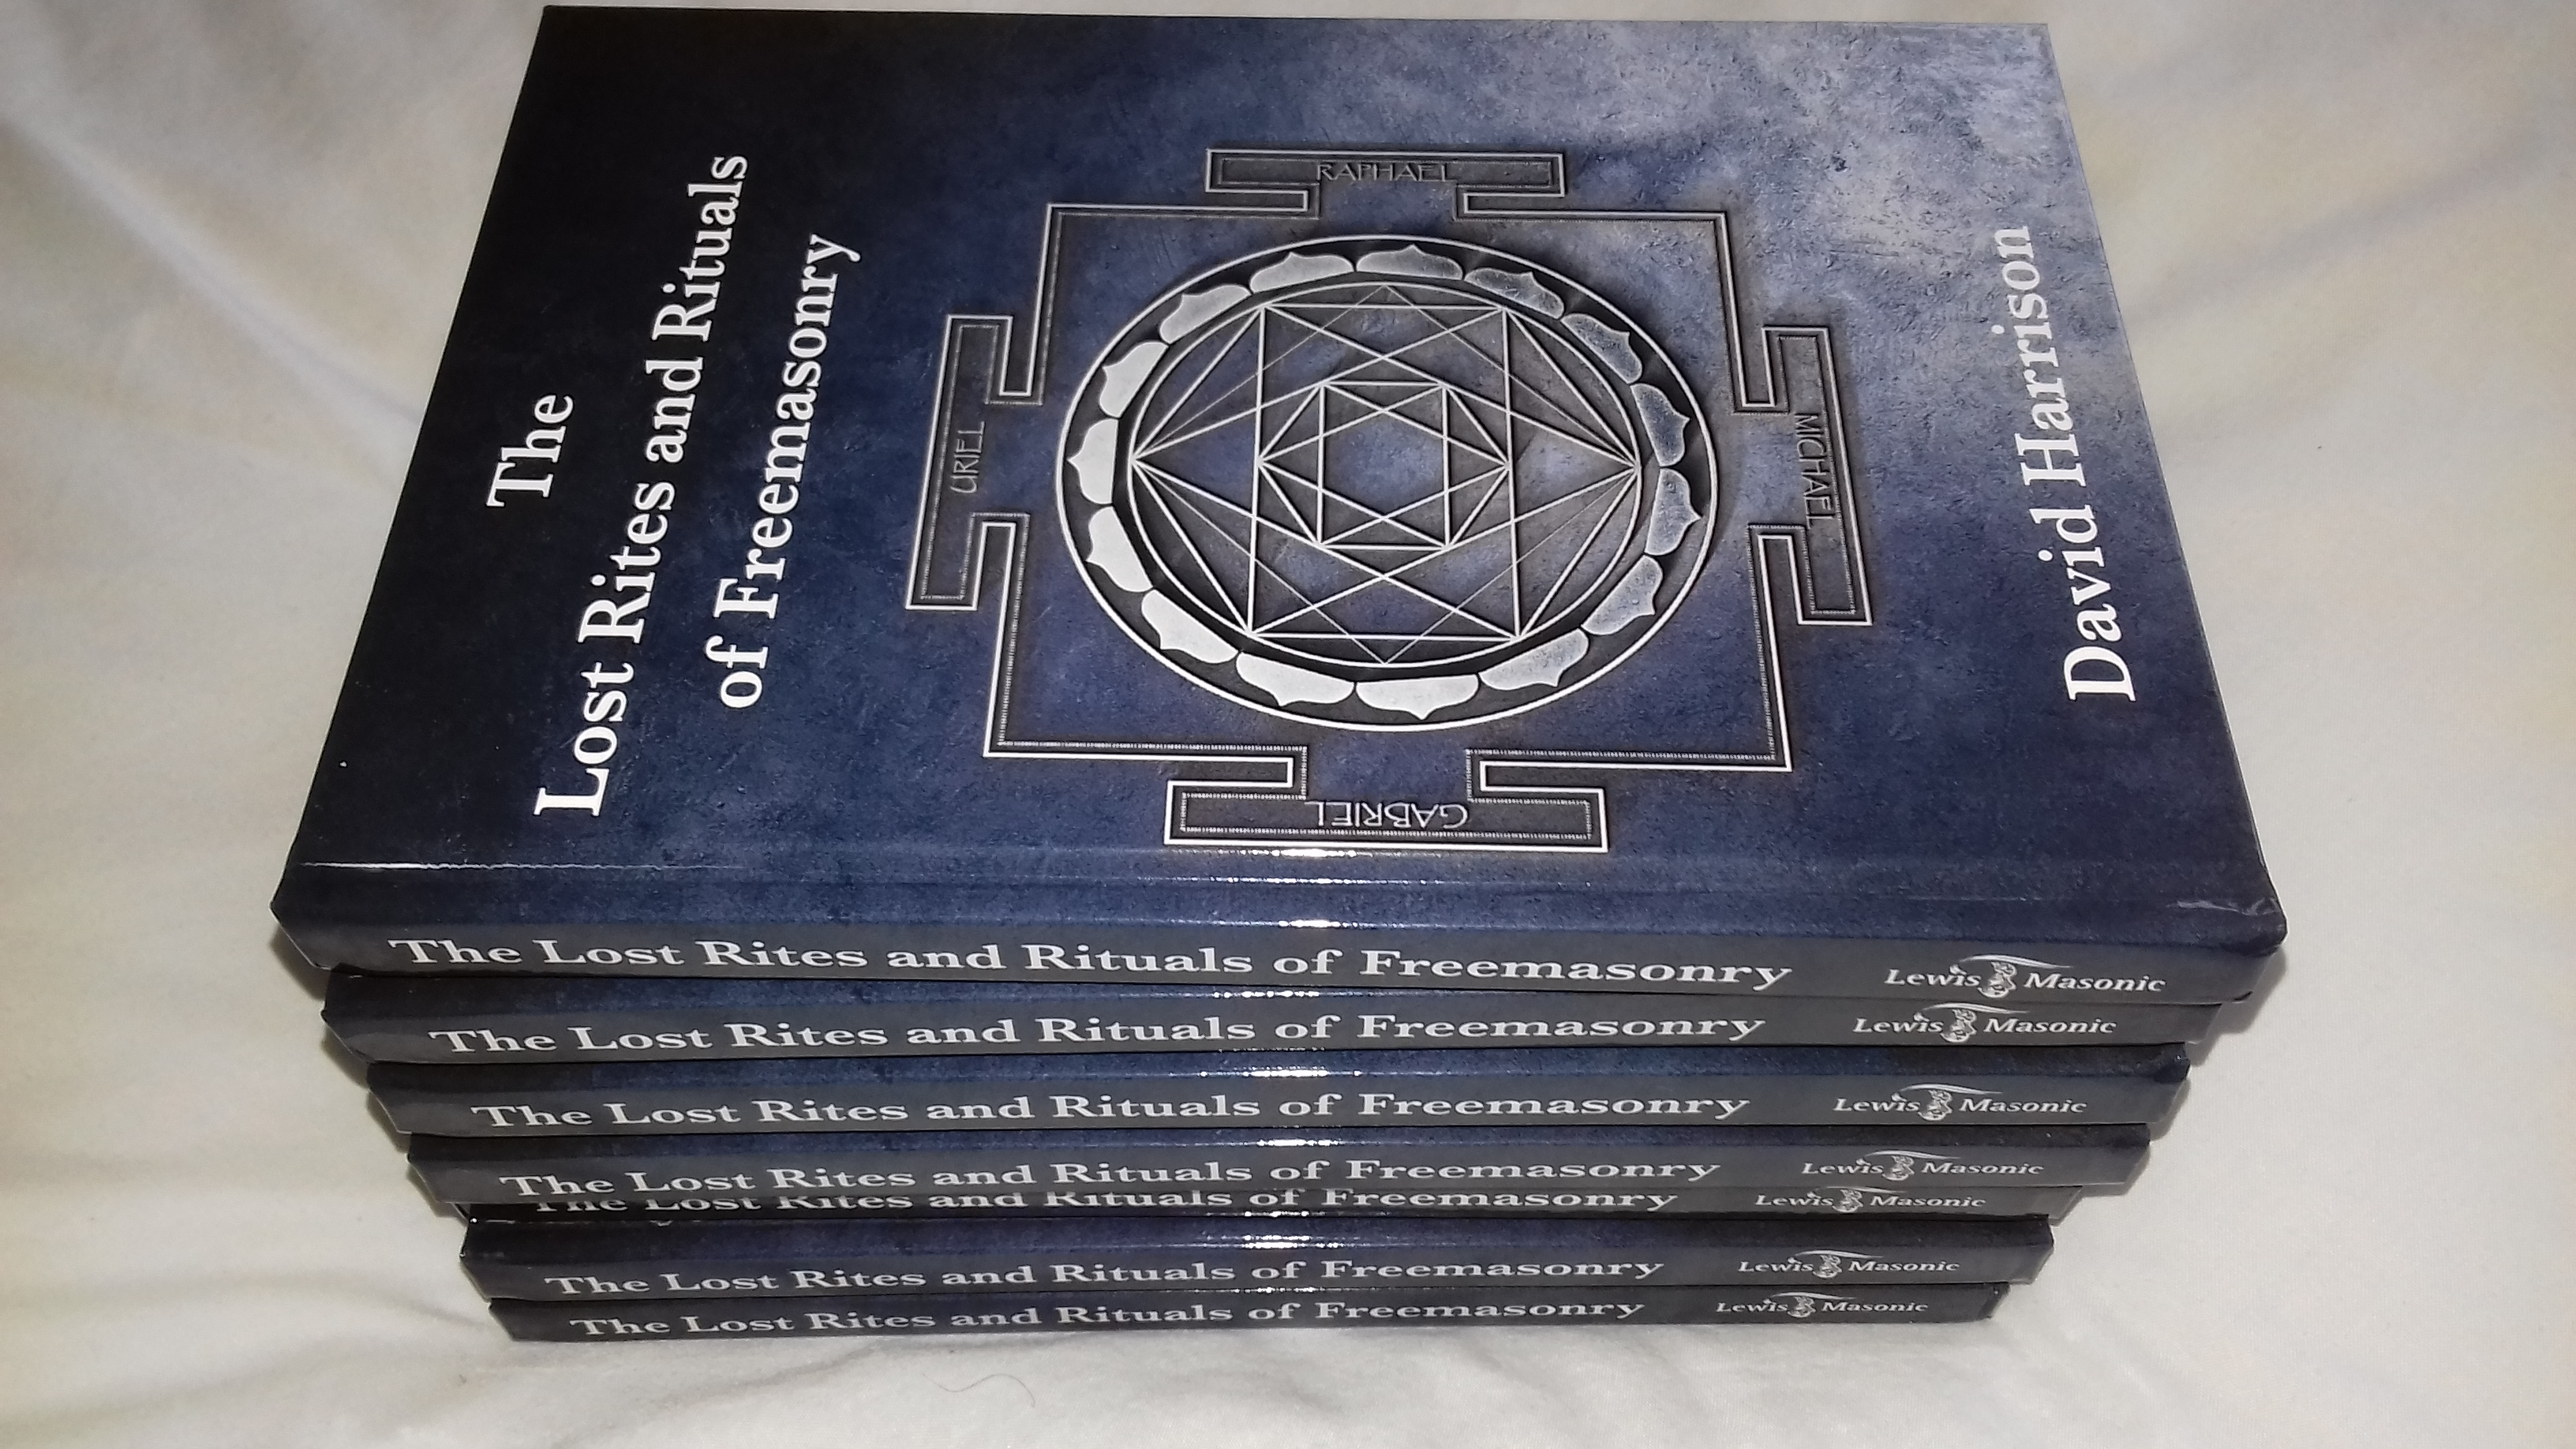 Review of The Lost Rites and Rituals of Freemasonry in The